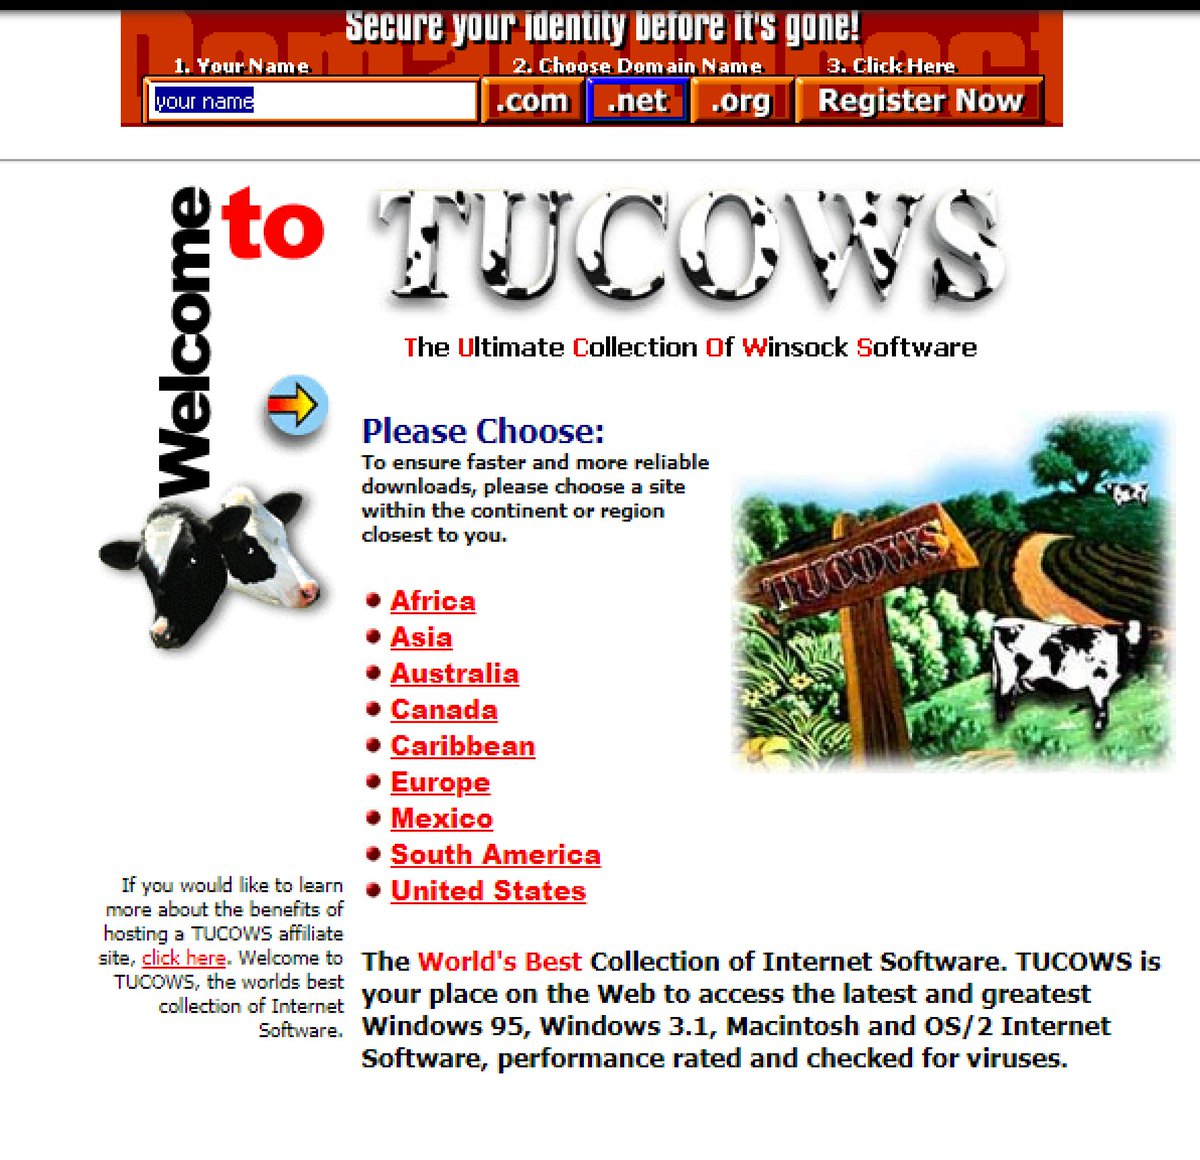 We've been handed a copy of the TUCOWS site before its closure. Thanks for reaching out to us, TUCOWS. For the curious, the software moved from Winsock Software to Windows software, and DOS/Previous OSes drifted off, so this is relatively modern. It's about 200gb/54,000 files.